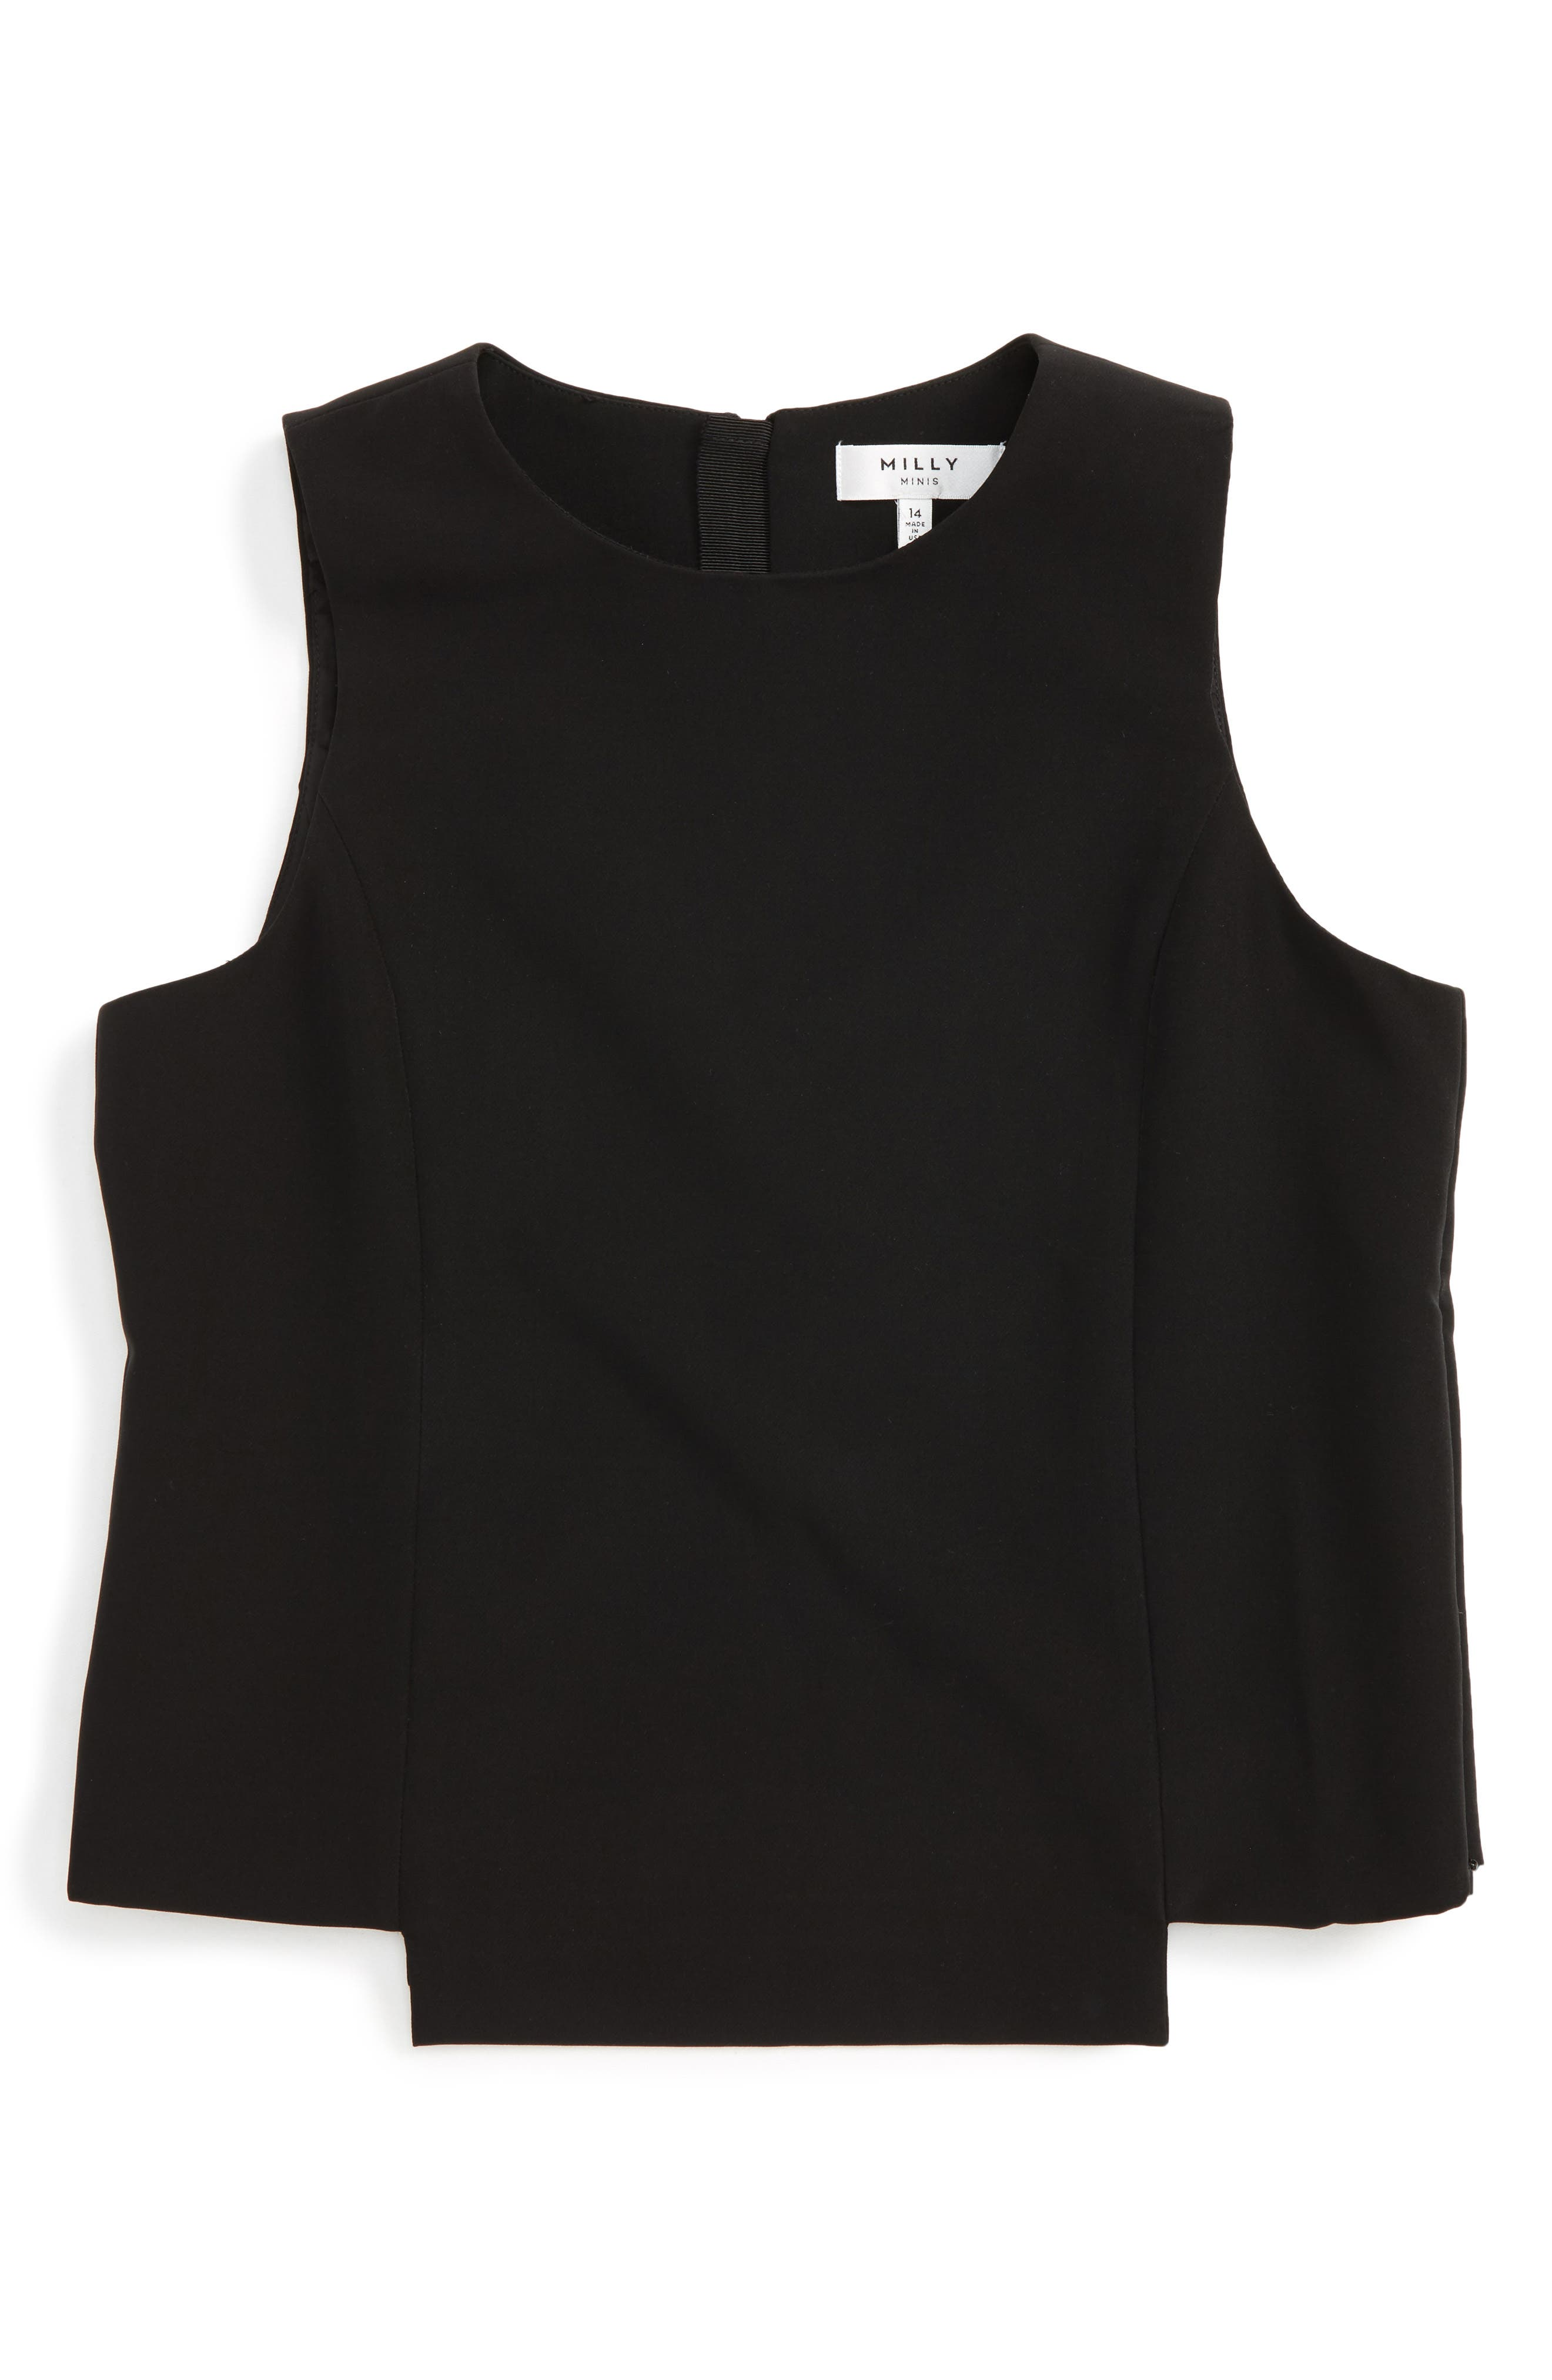 Alternate Image 1 Selected - Milly Minis Cady Sleeveless Top (Big Girls)